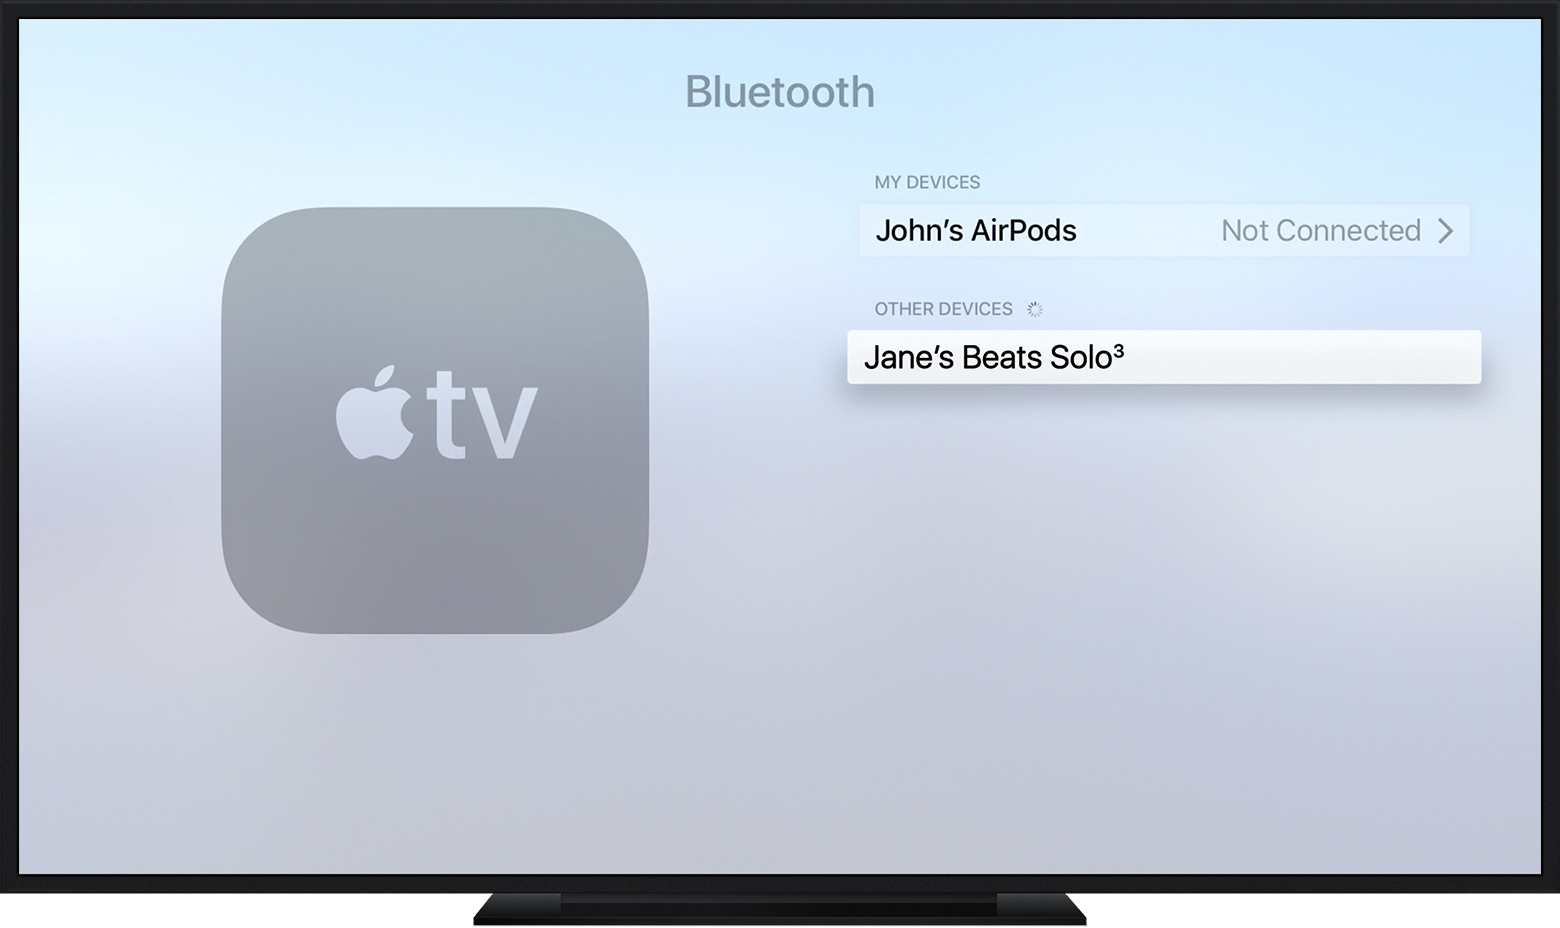 Apple tv bluetooth selection page